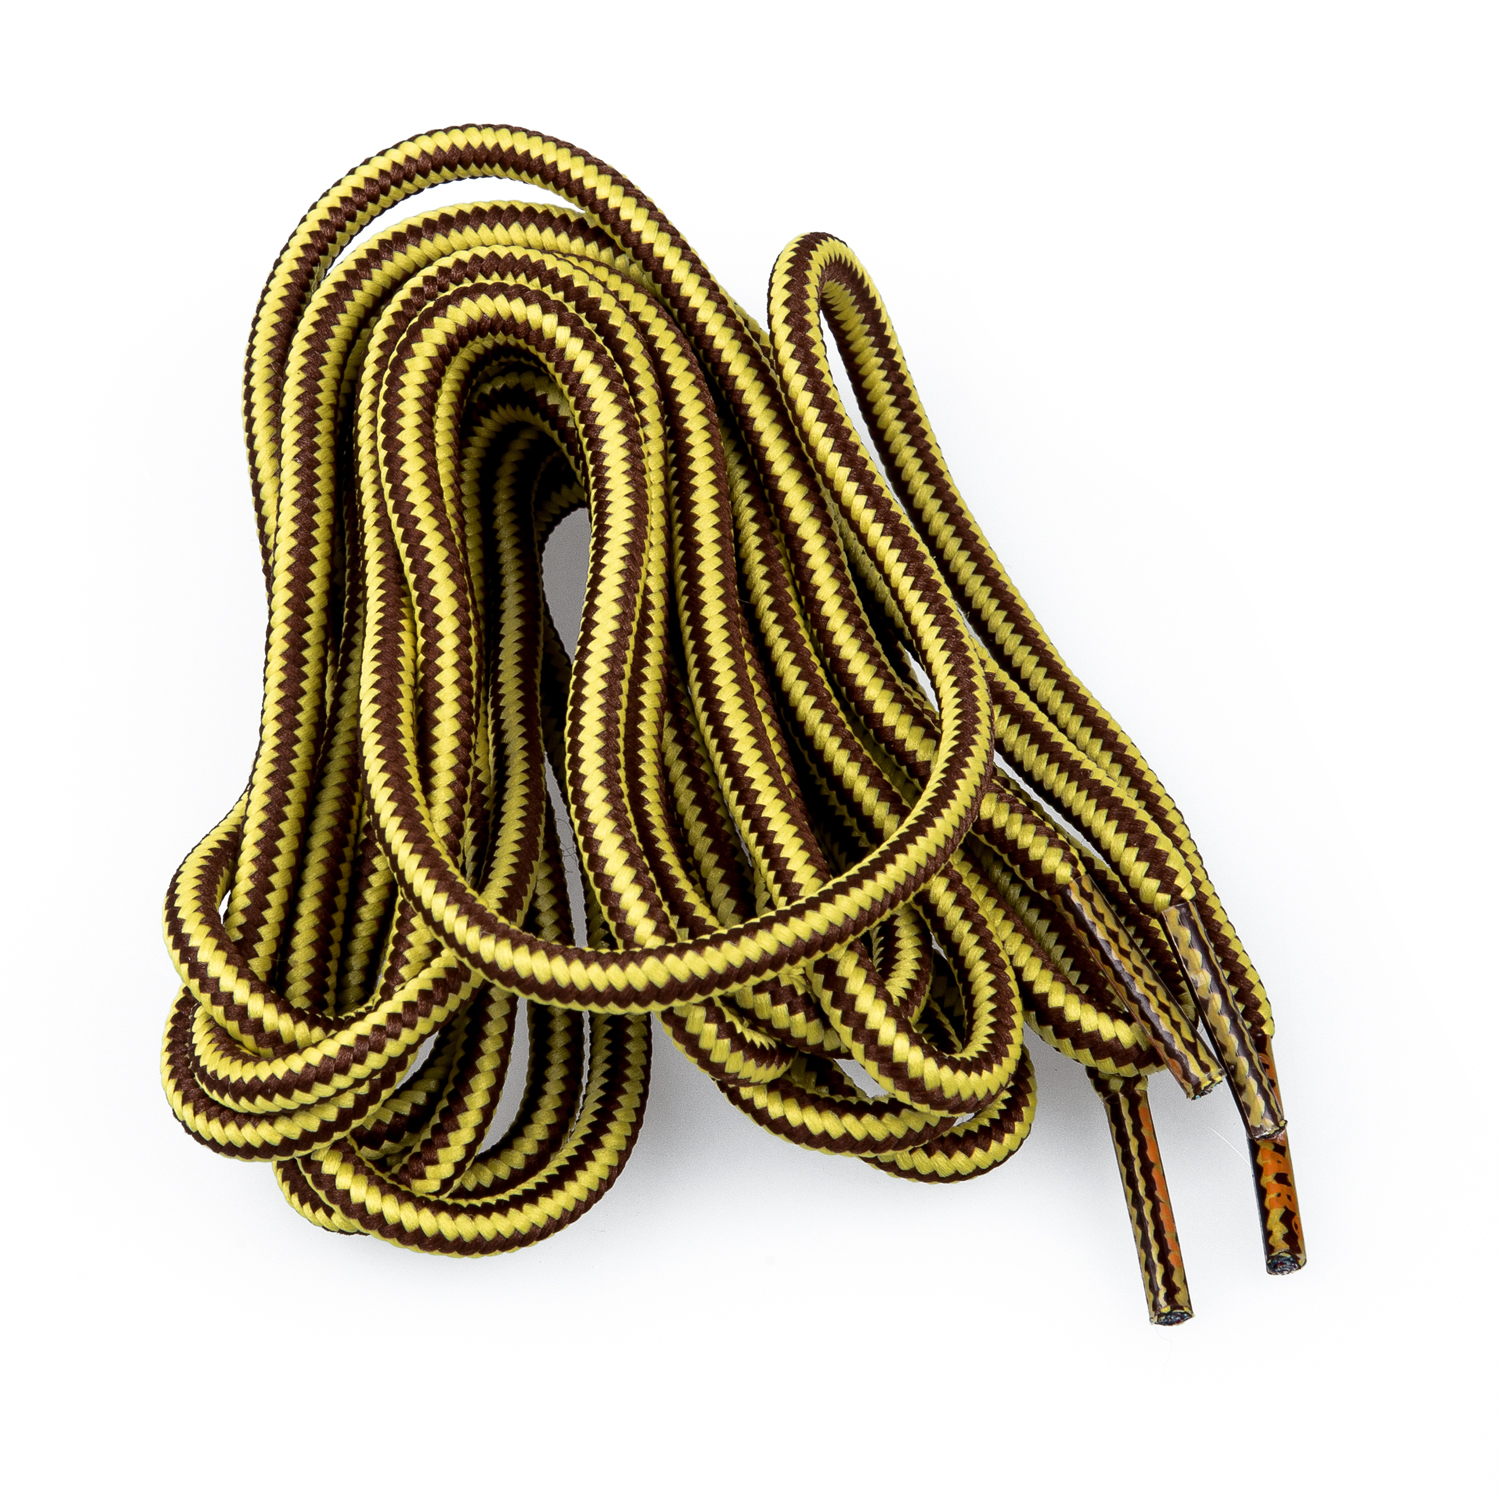 RAN 1 pair 152 cm Sustainable High Resistance Laces for  Shoes - Cinnamon Stripes